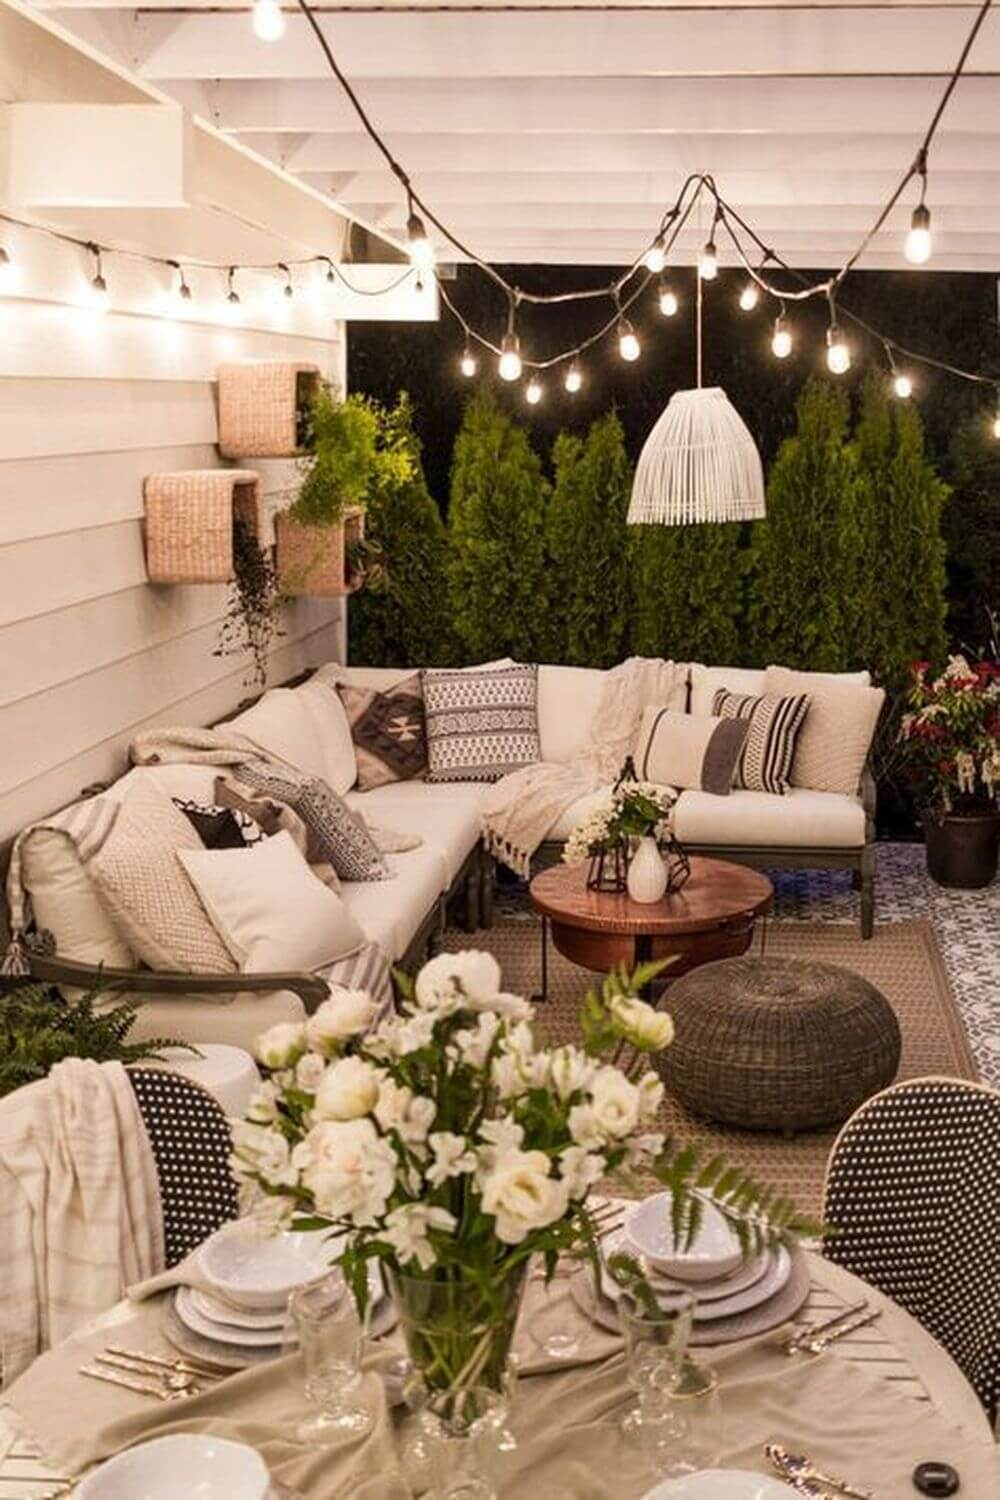 33 Best Outdoor Living Space Ideas and Designs for 2020 on Garden Living Space id=52799